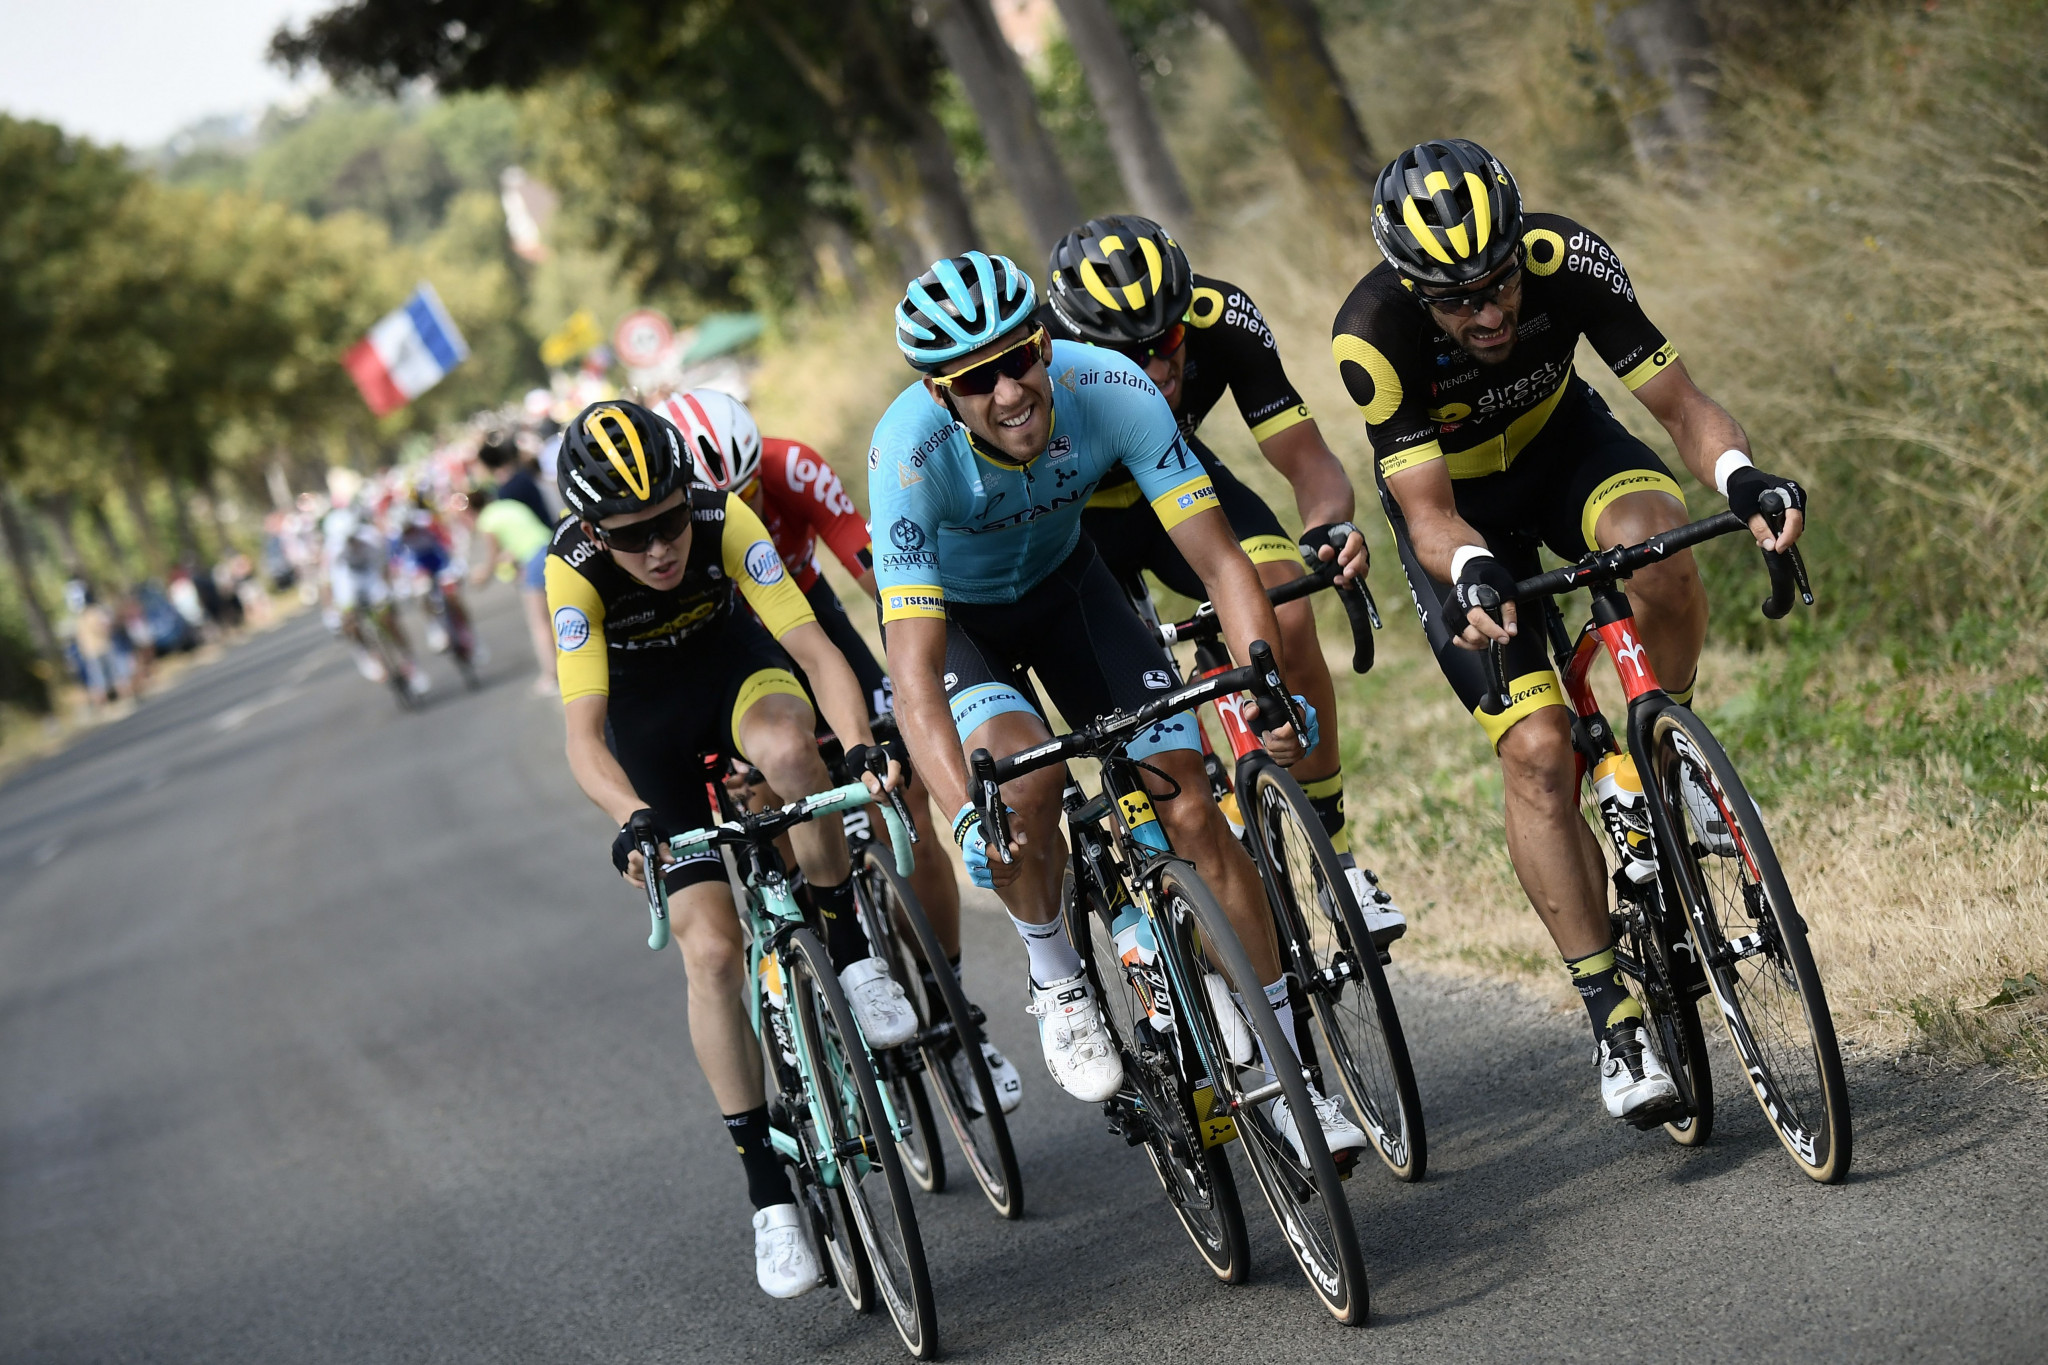 Tolhoek triumphs in opening mountain stage of Tour de Suisse